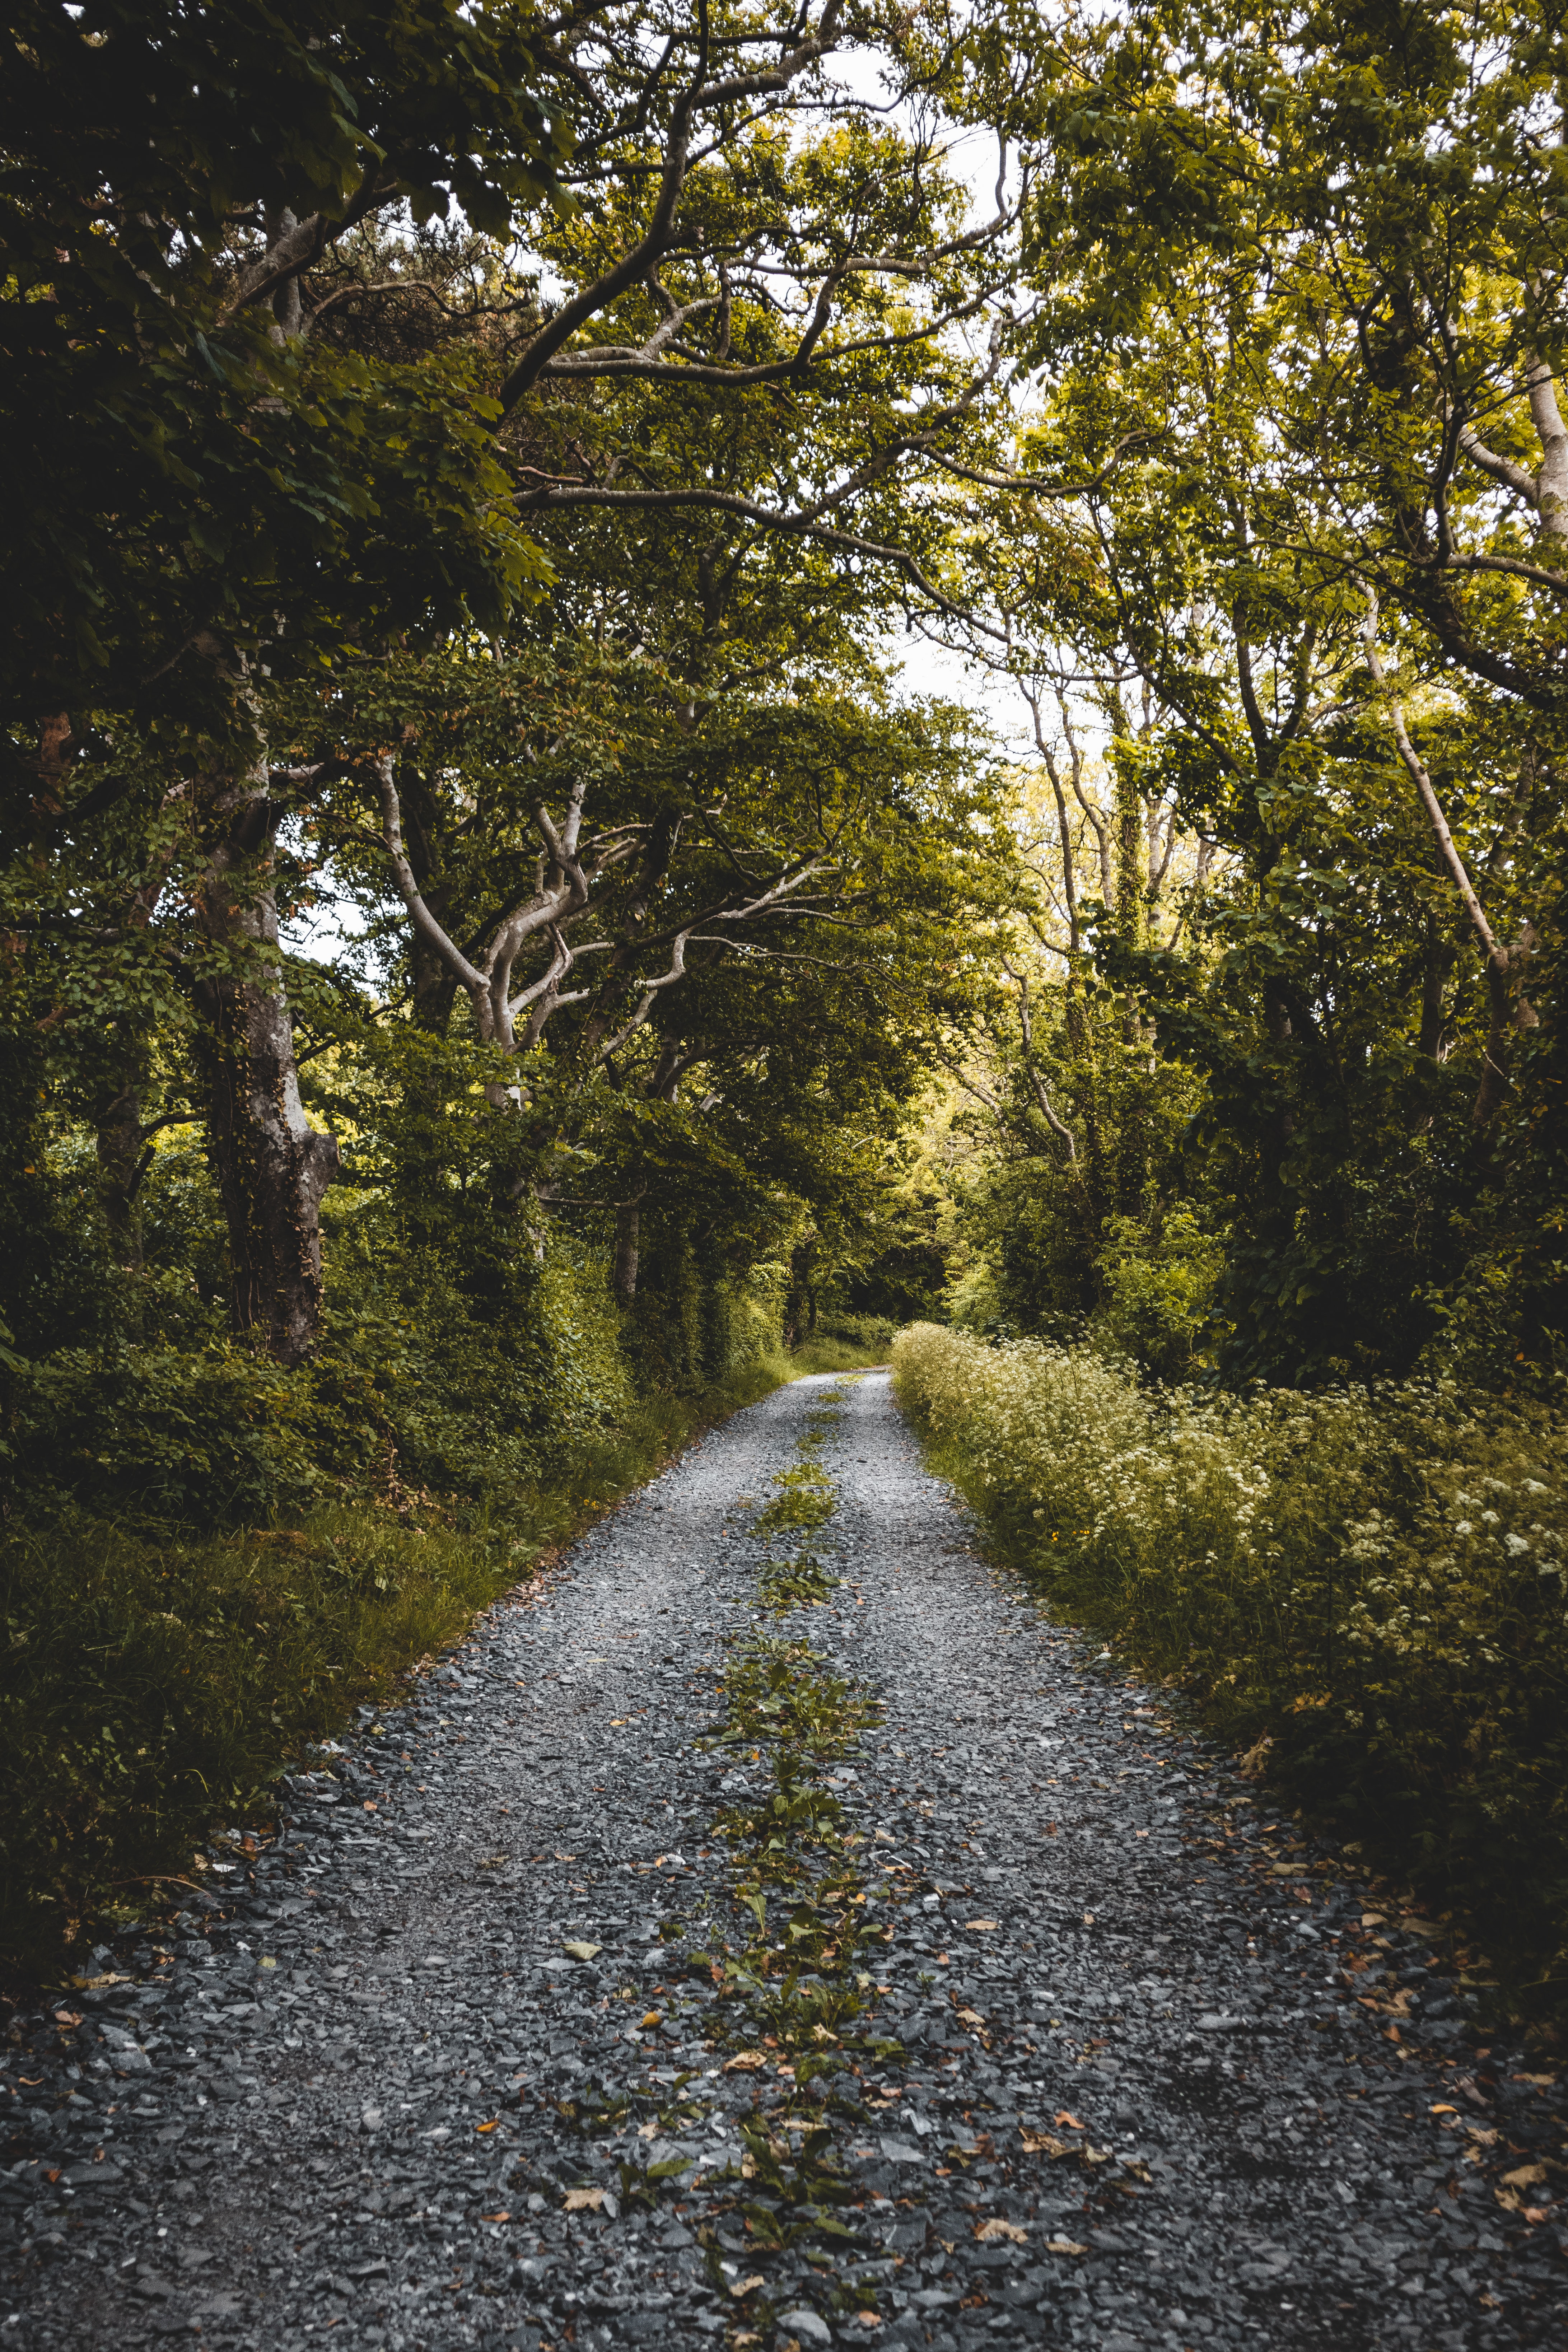 131969 download wallpaper Plants, Nature, Trees, Road, Forest screensavers and pictures for free